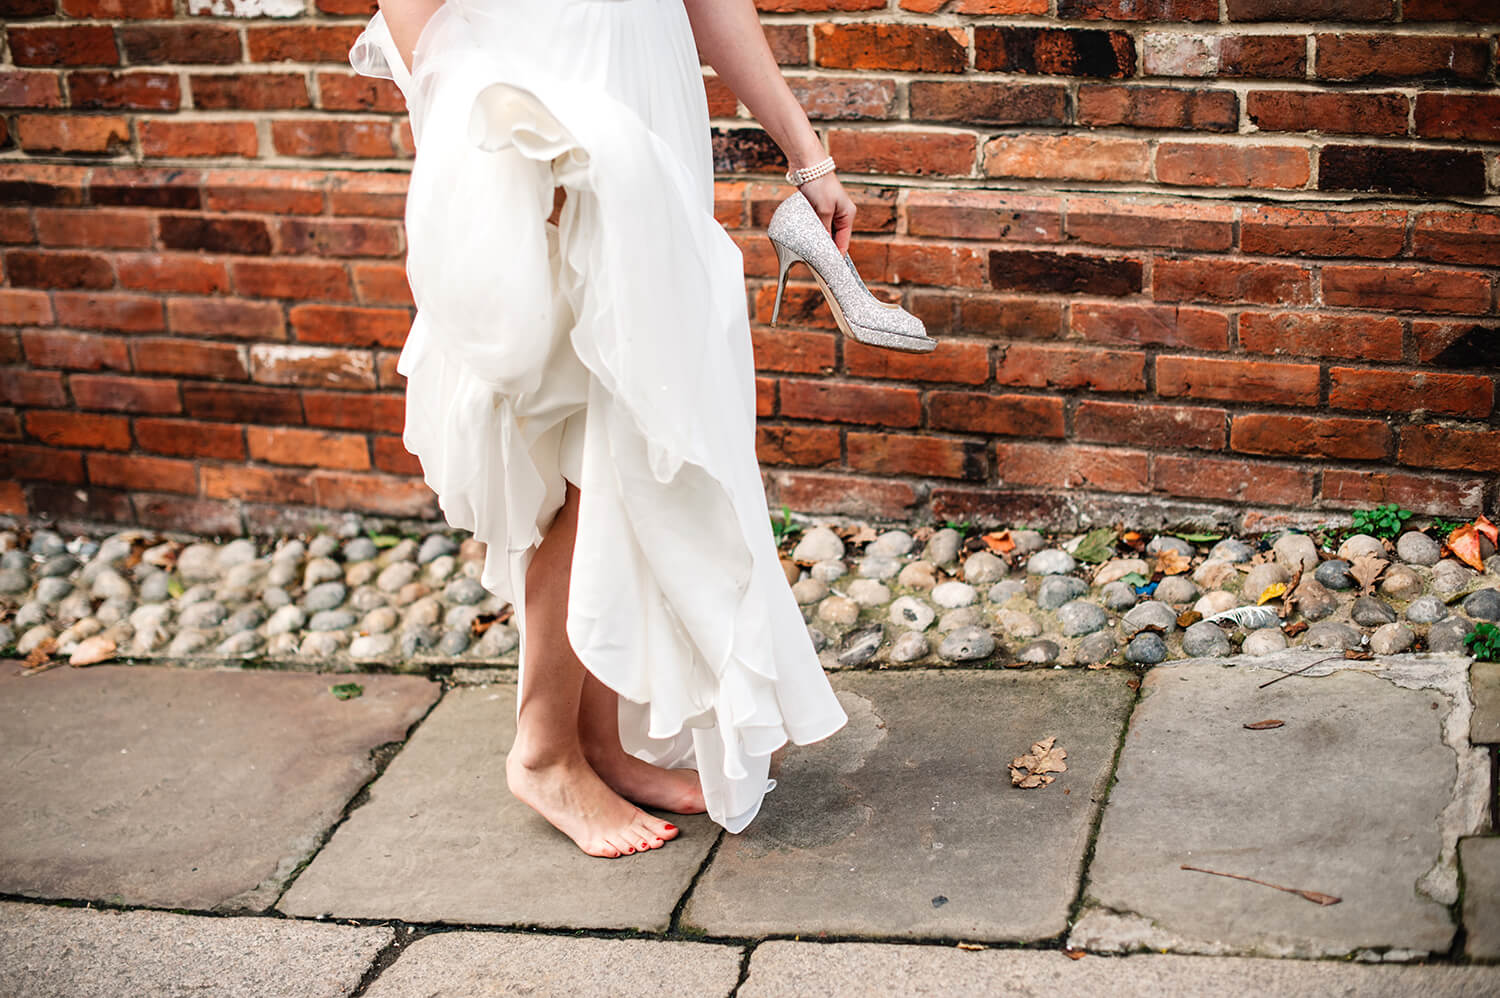 close up of Bride's feet walking barefoot with shoes in her hands